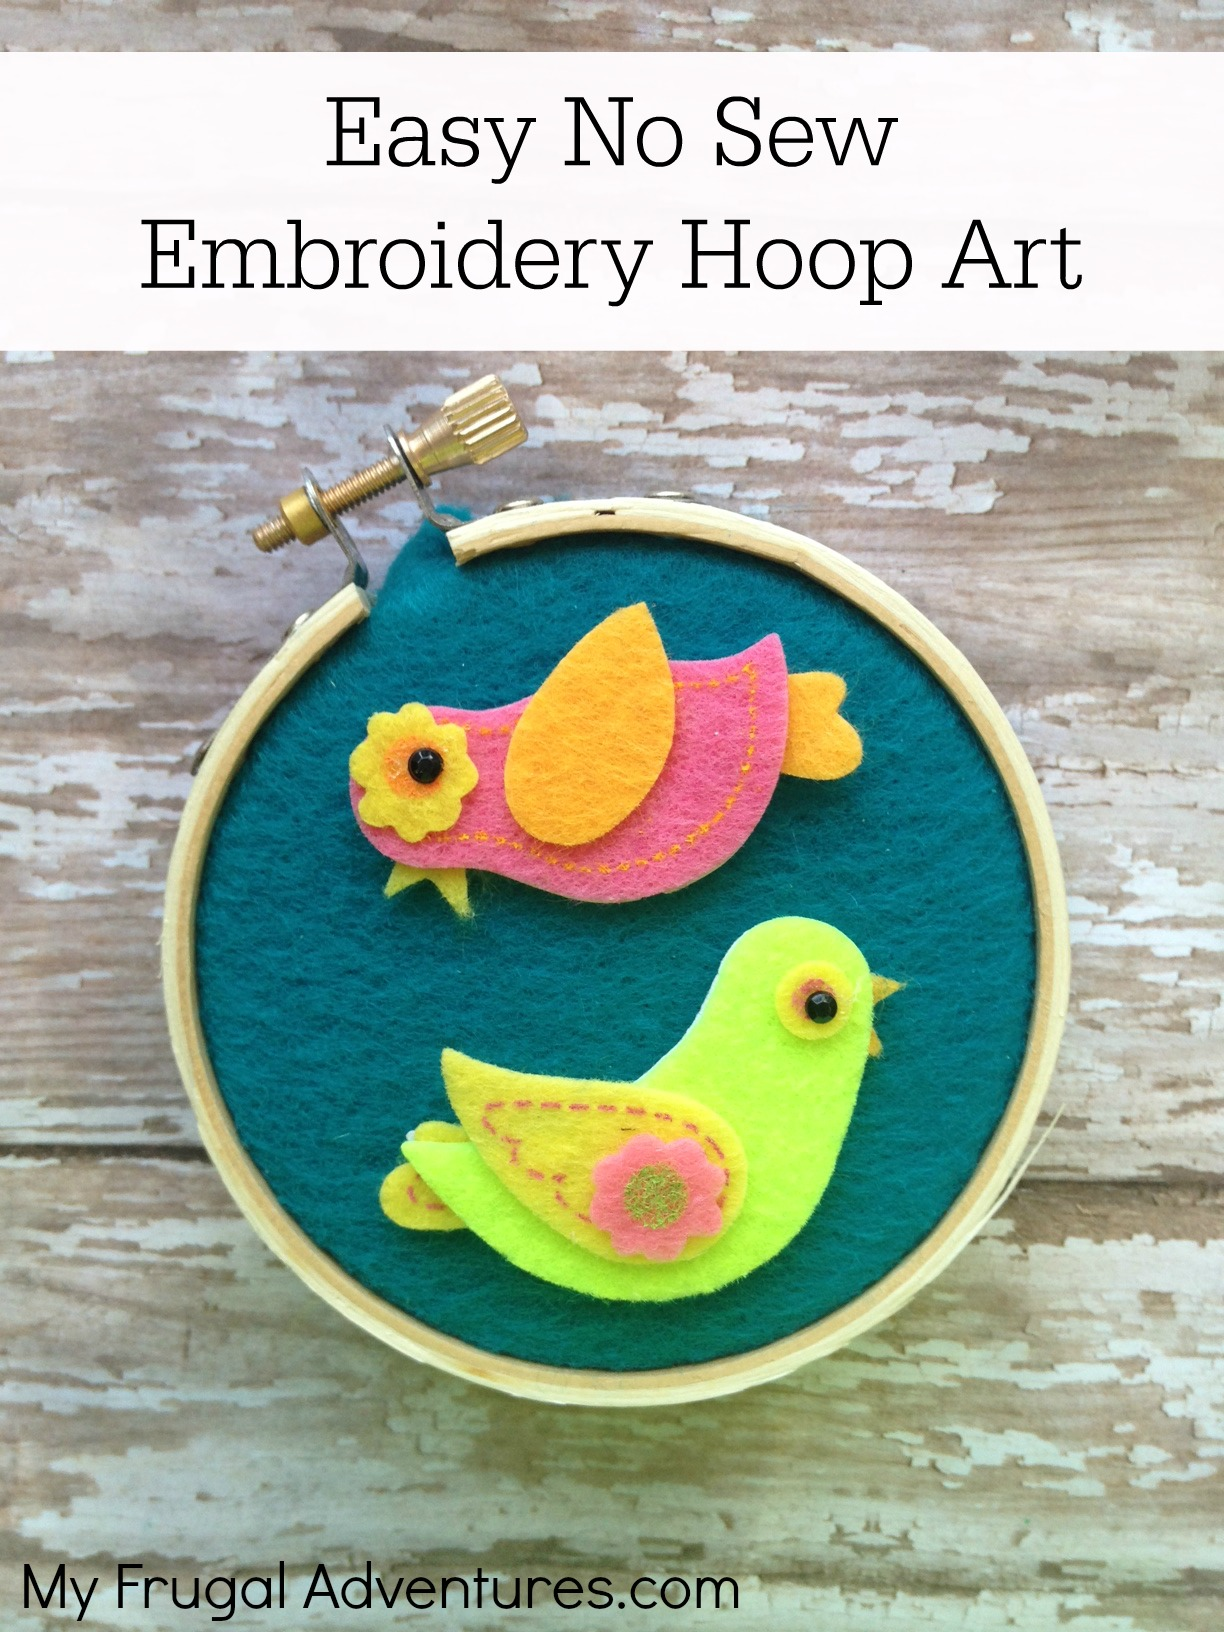 No sew embroidery hoop art craft perfect children s